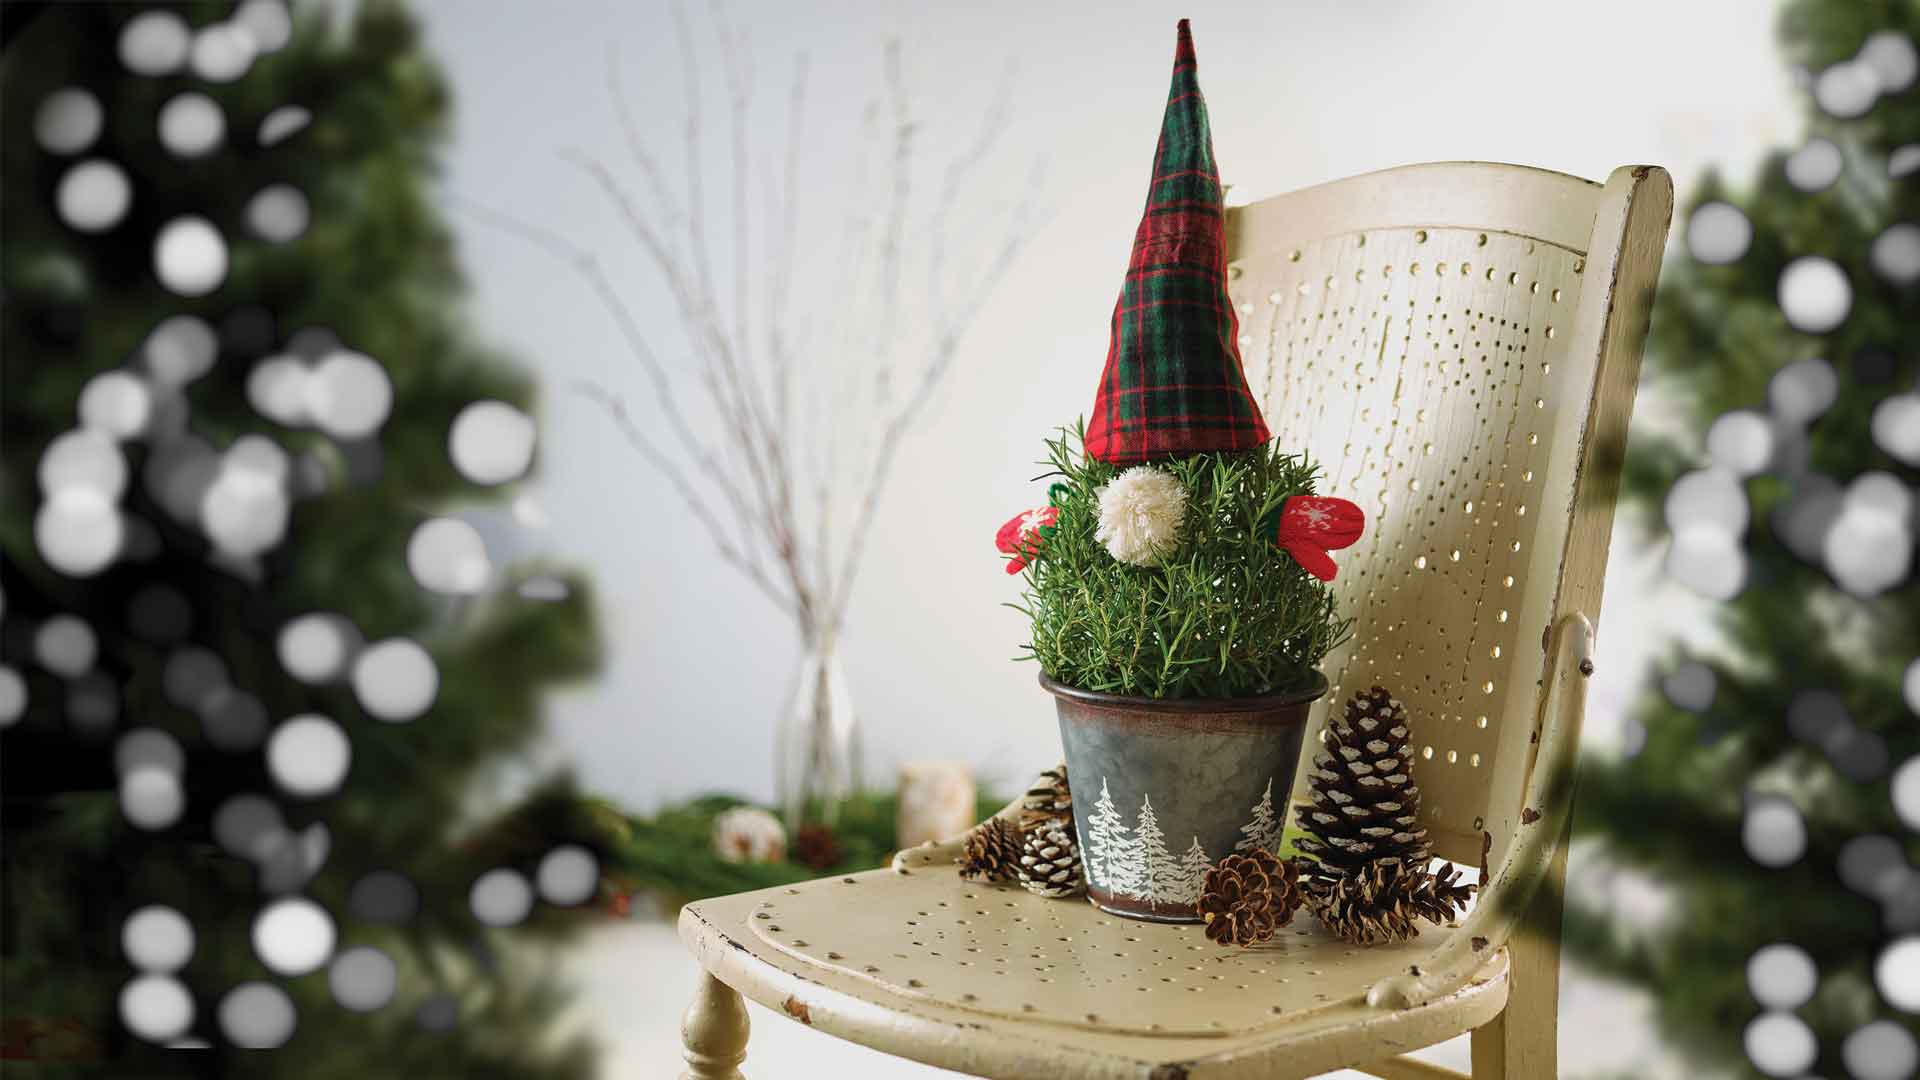 A gnome made of a rosemary tree with a hat and mittens. The tree is planted in a metal pot with white trees on it and is sitting on a metal chair.